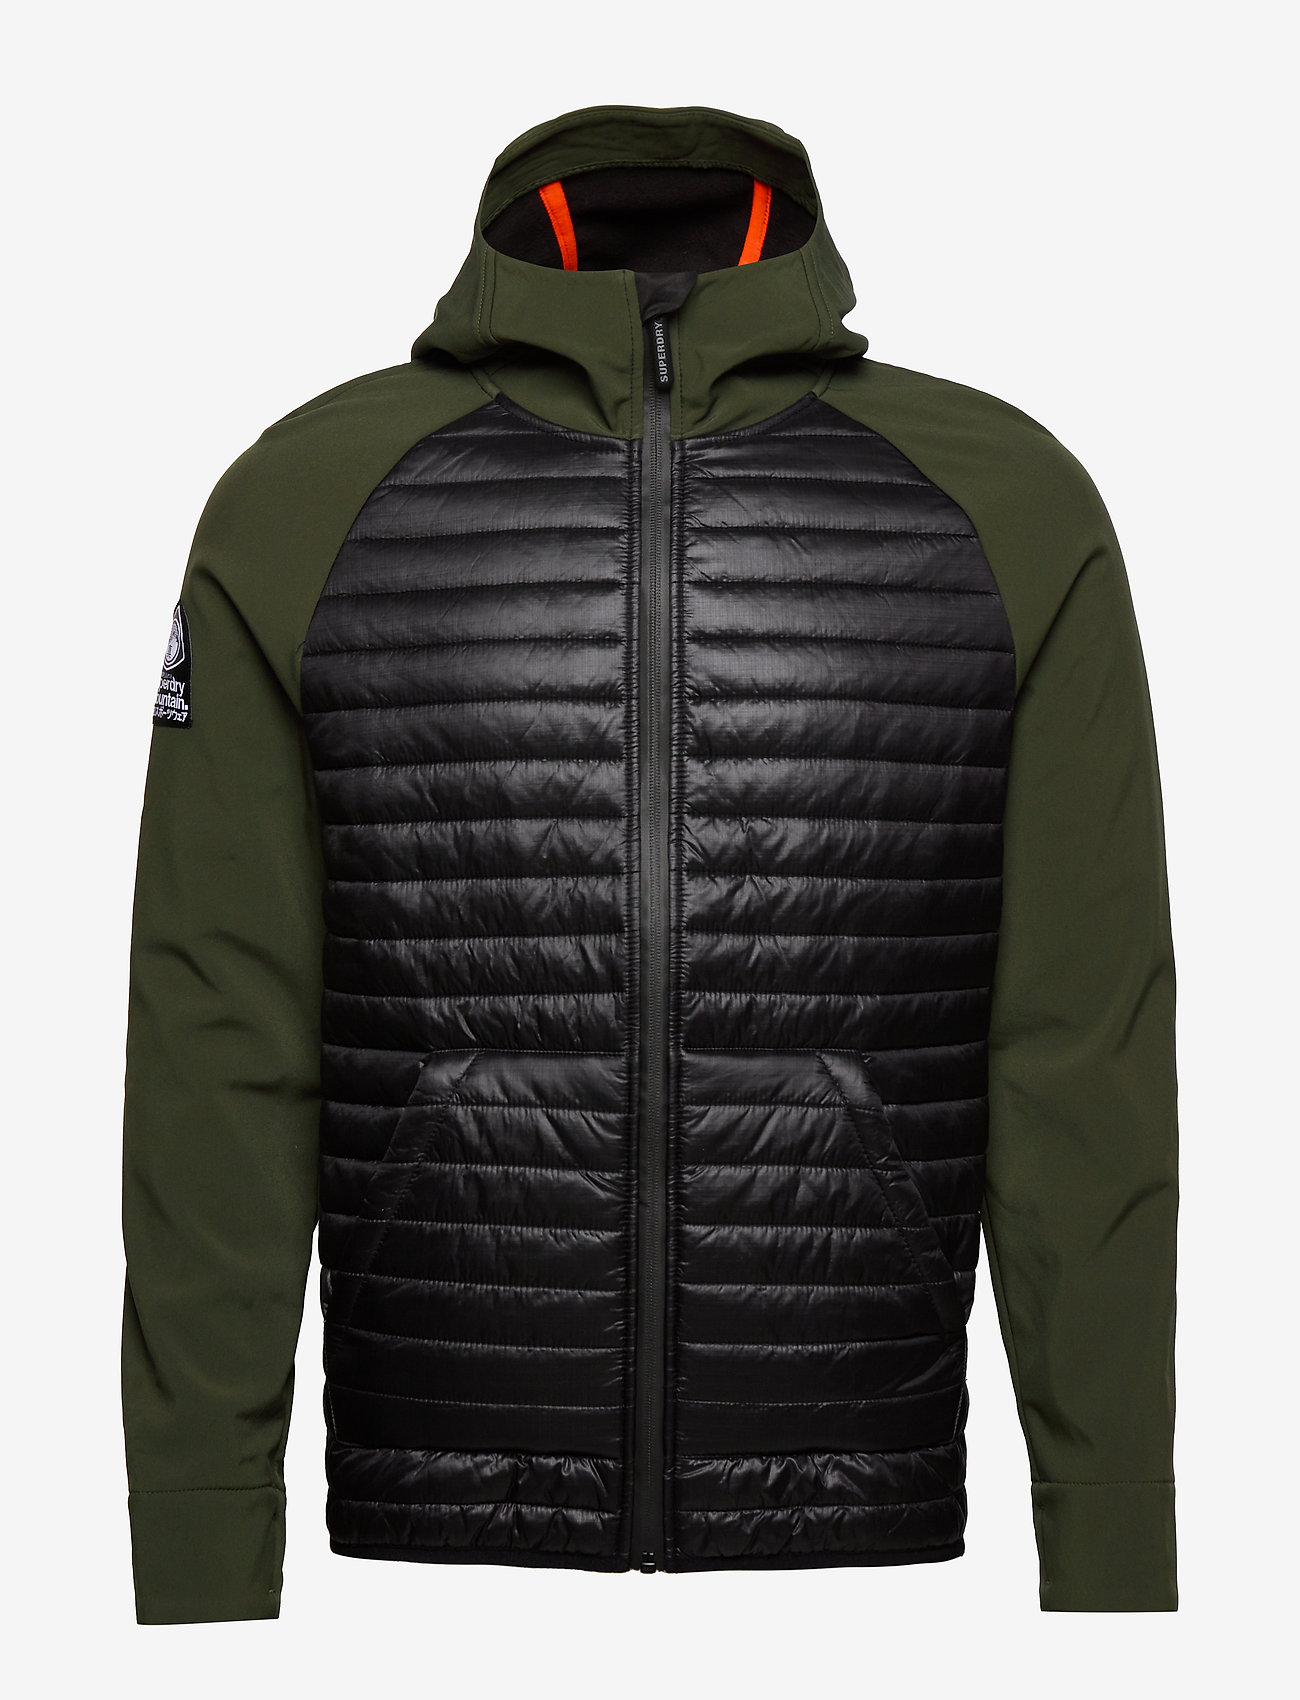 Mountaineer Softshell Hybrid (Dark Olive/black) - Superdry 1oRhpP